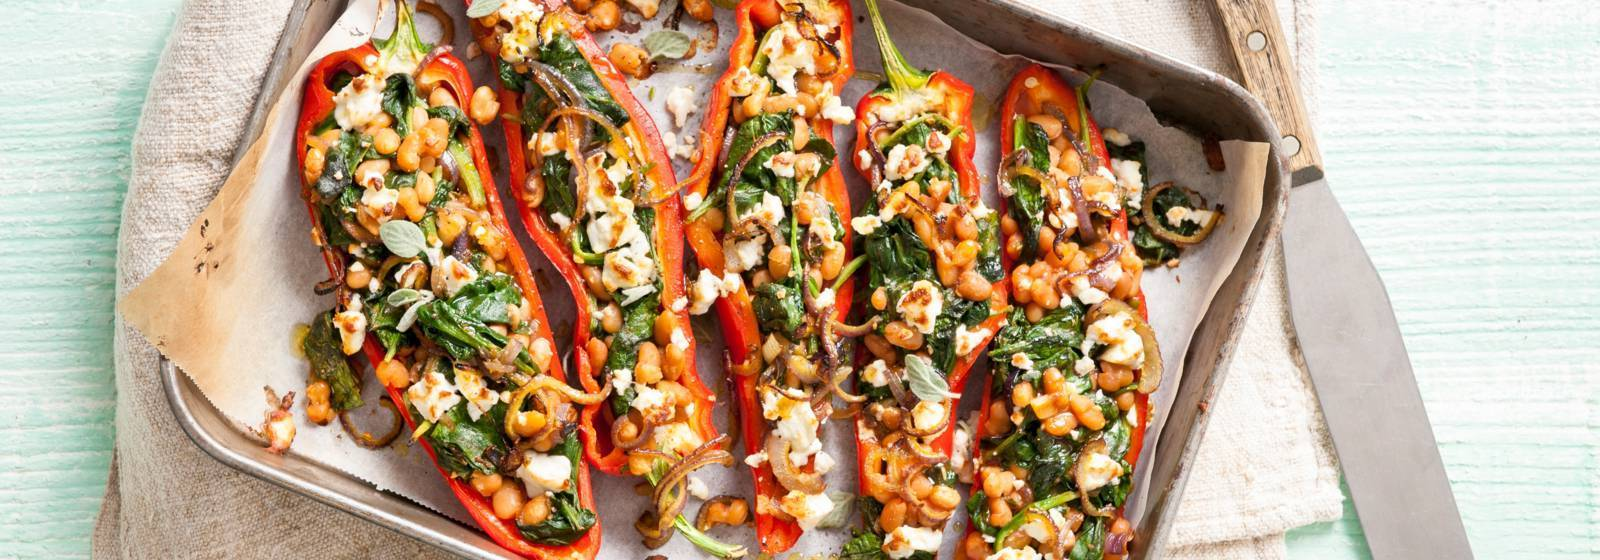 Pointed peppers stuffed with spinach and white cheese